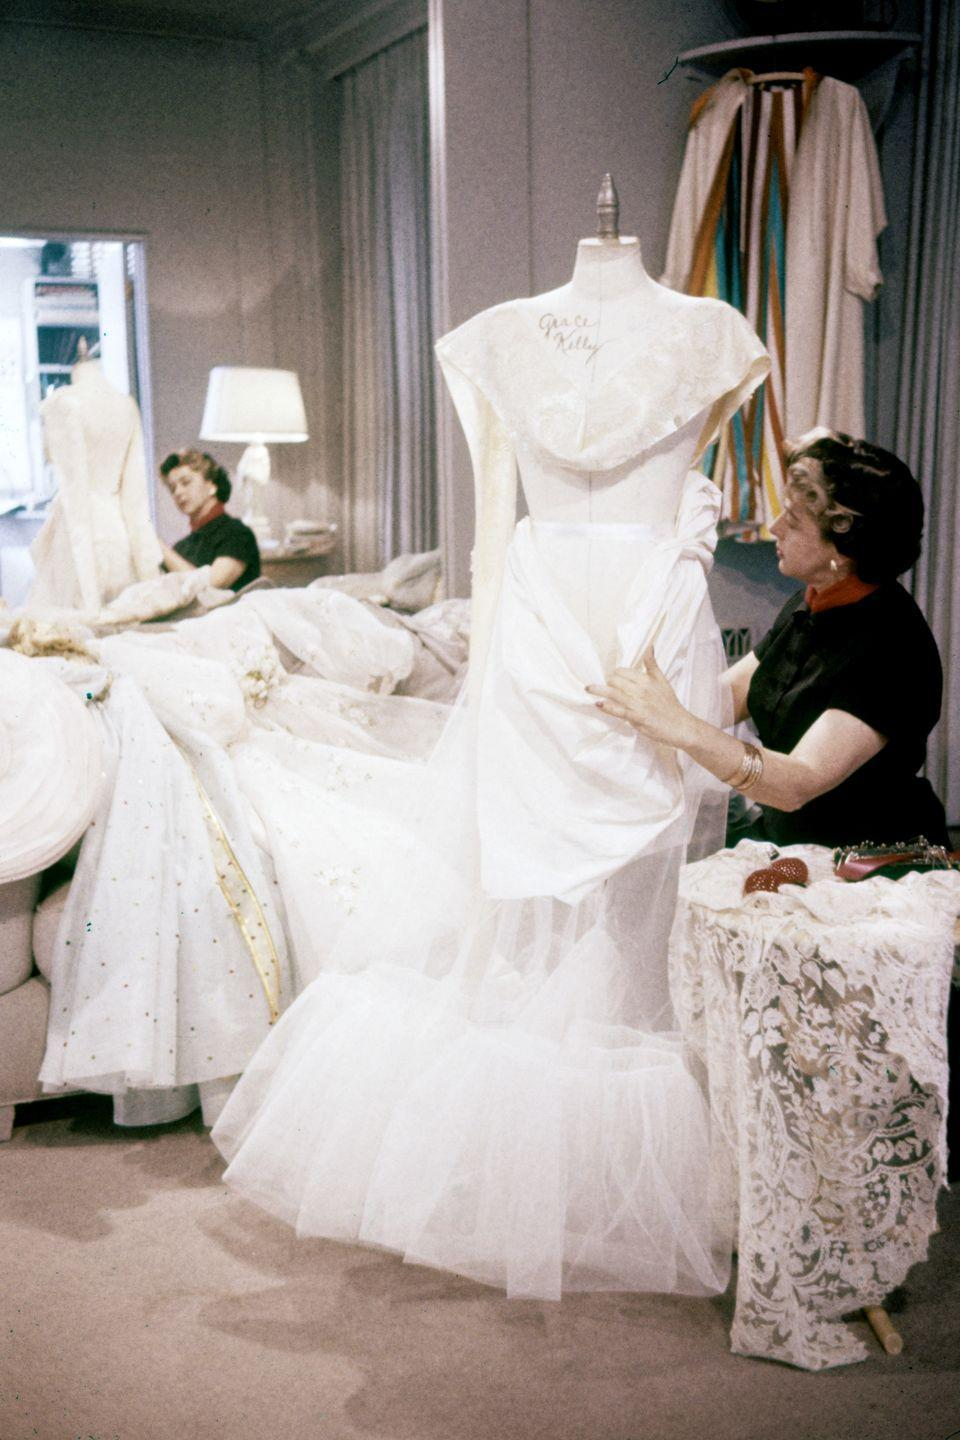 """<p>The studio's wardrobe department created the <a href=""""http://www.philamuseum.org/collections/permanent/56621.html"""" rel=""""nofollow noopener"""" target=""""_blank"""" data-ylk=""""slk:&quot;fairy-princess&quot; look"""" class=""""link rapid-noclick-resp"""">""""fairy-princess"""" look</a> piece by piece. The lace bodice also came with a slip, skirt support and underbodice. Foundation, ruffled and smoothing petticoats went under the pleated silk faille skirt. Finally, a train insert and silk faille cummerbund completed the outfit. </p>"""